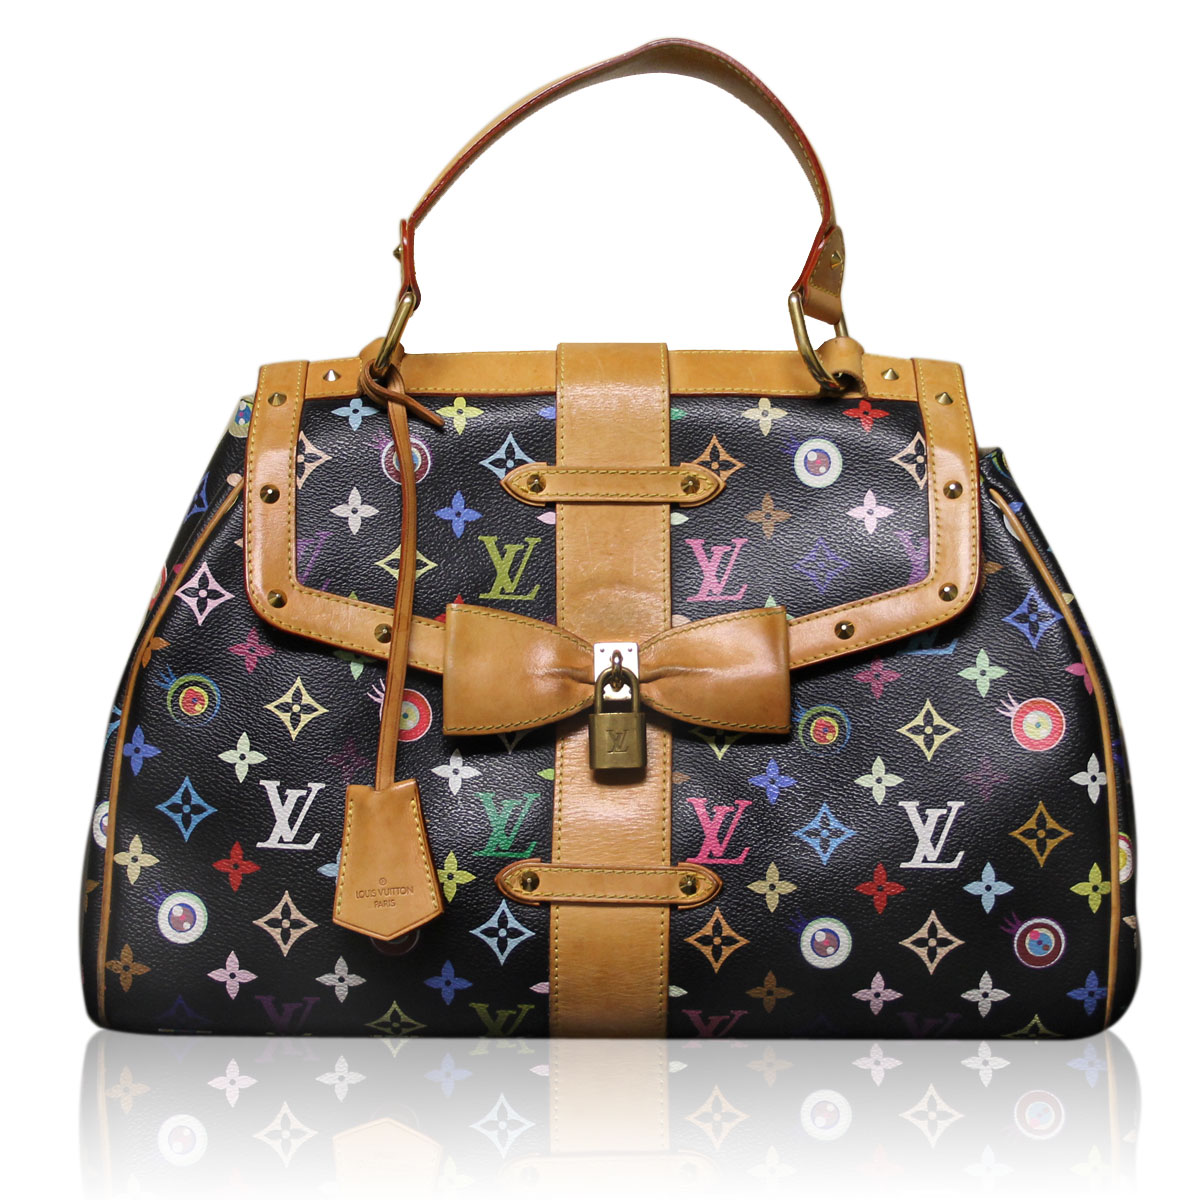 ... Louis Vuitton Eye Love You Black Multi Color Takashi Murakami Handbag  Purse. Sale! b81bfb3adf